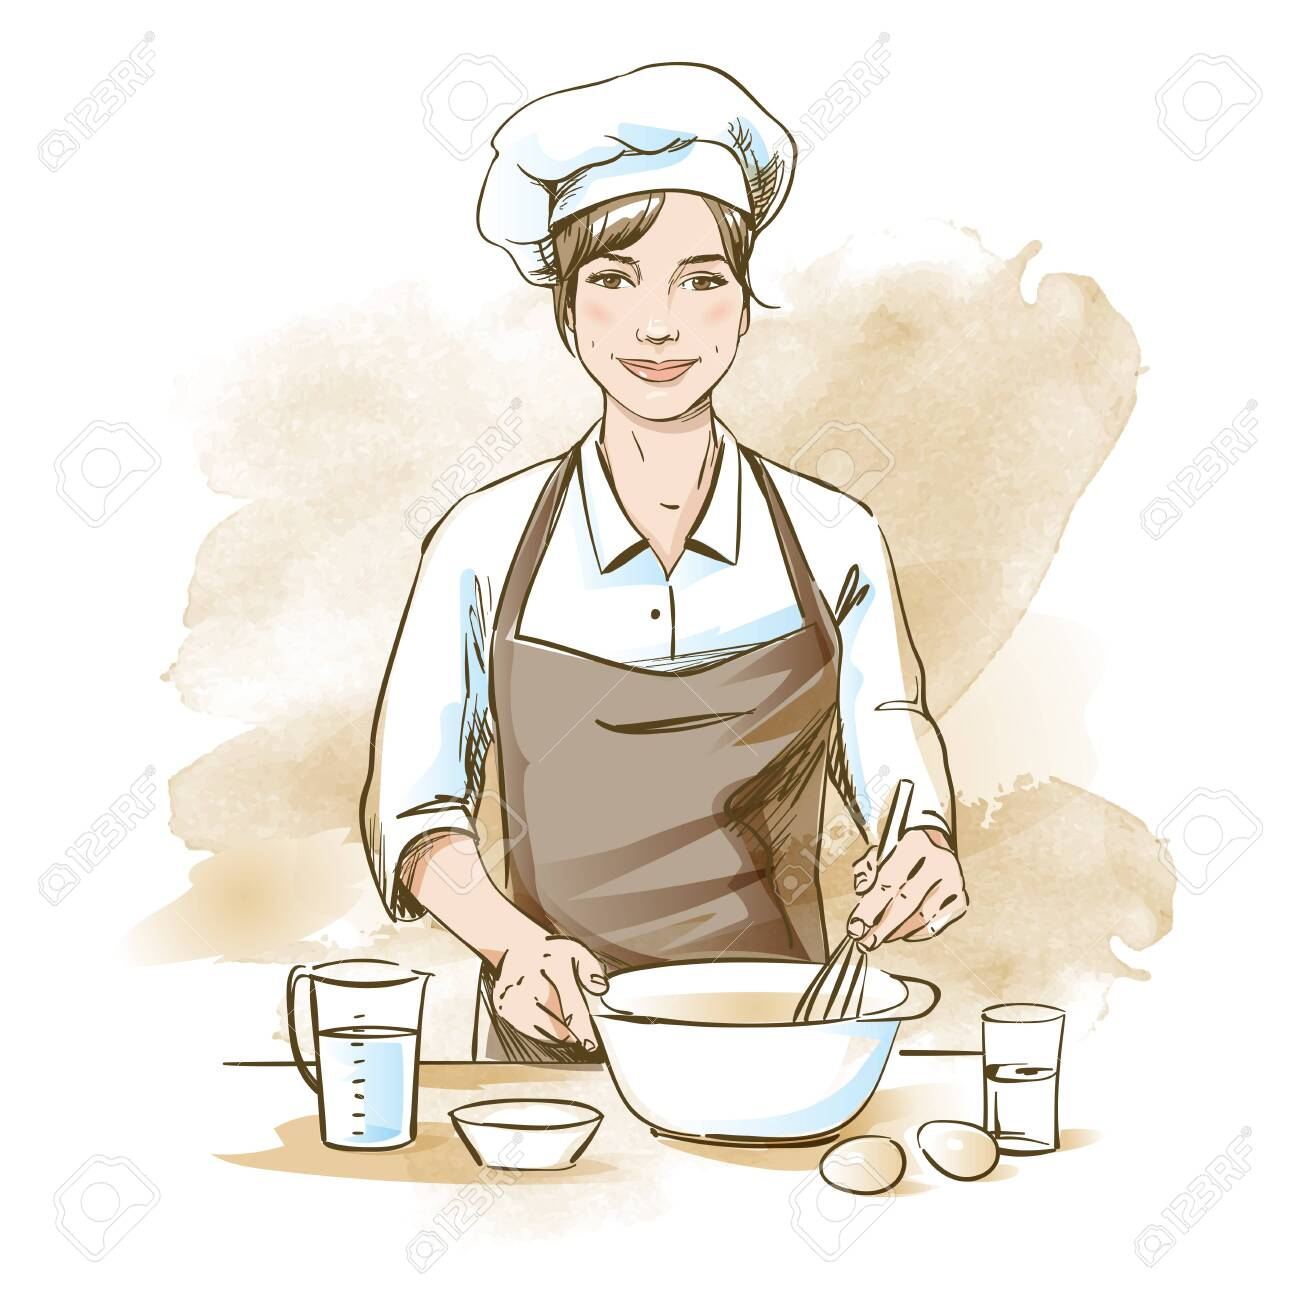 Smiling and happy female chef. Woman chef is cooking with whisk. Hand drawn vector illustration on artistic watercolor background. - 123757637